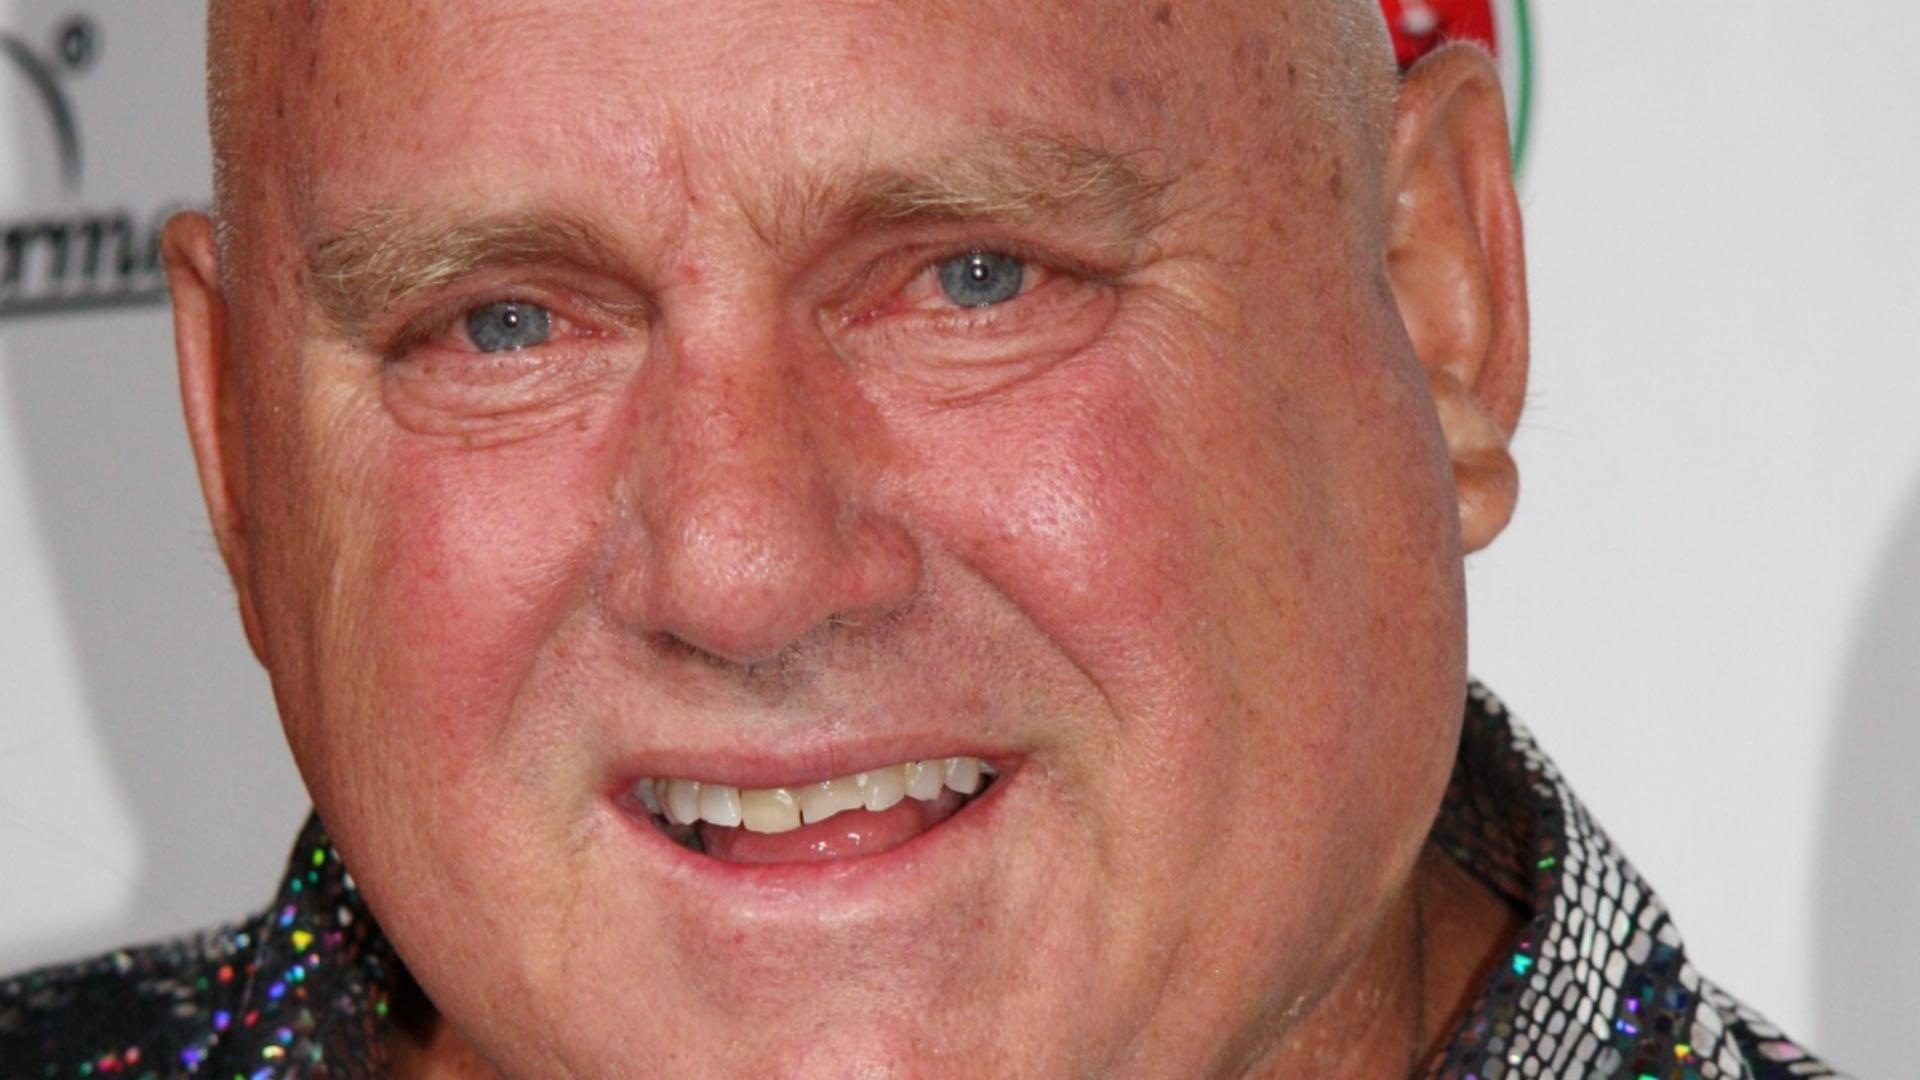 National News - Famed Brothel Owner Dennis Hof Expected to Win Election, Despite Death